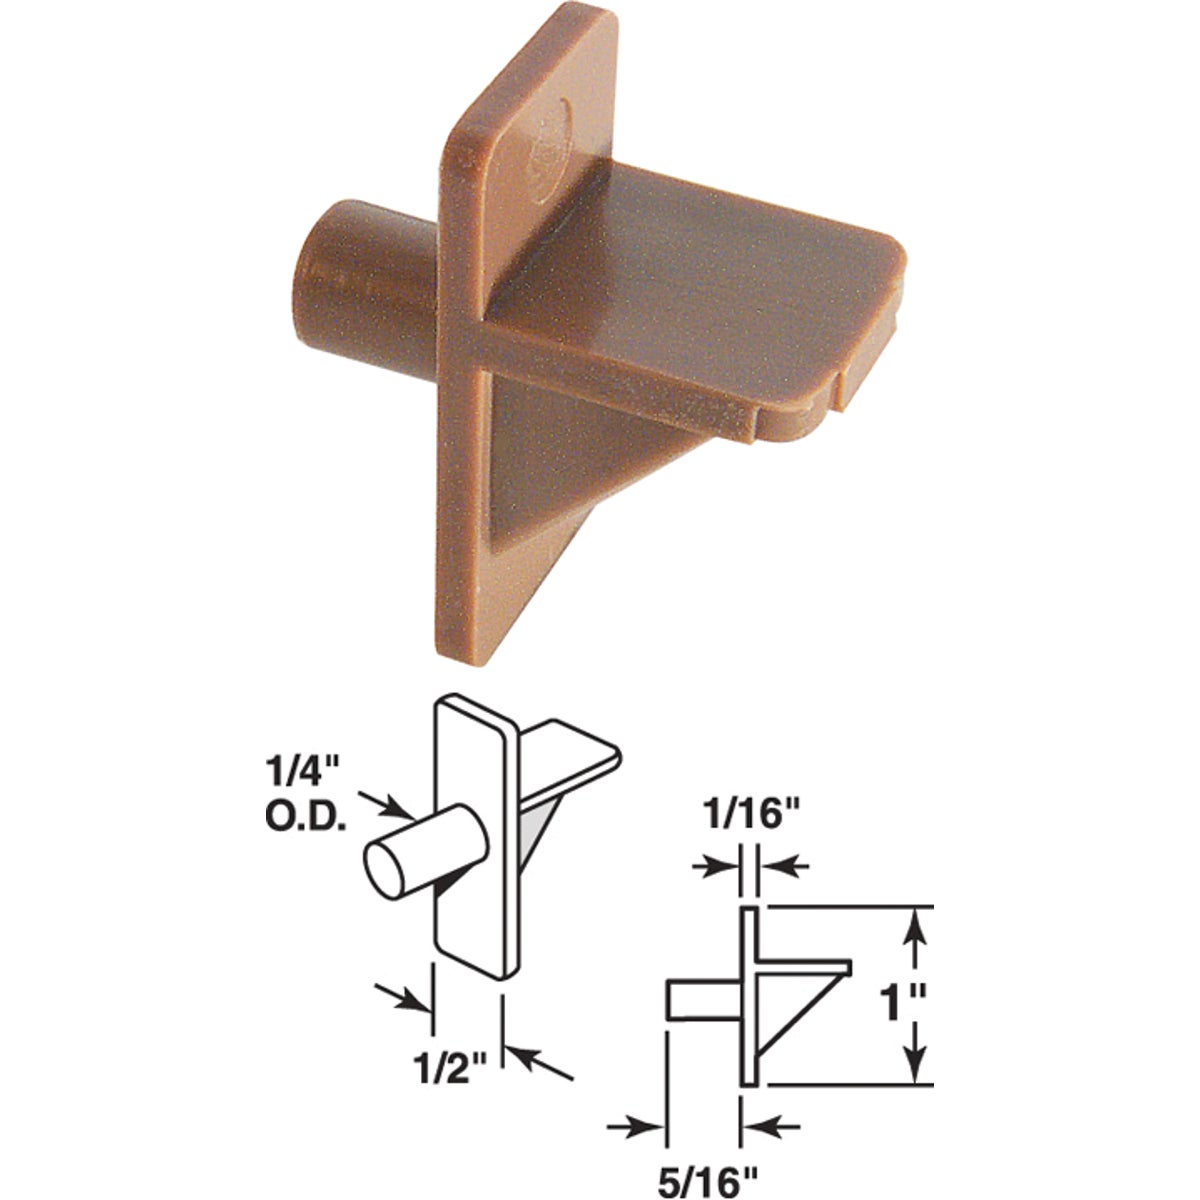 BRN SHELF SUPPORT - 241945 by Prime Line Products